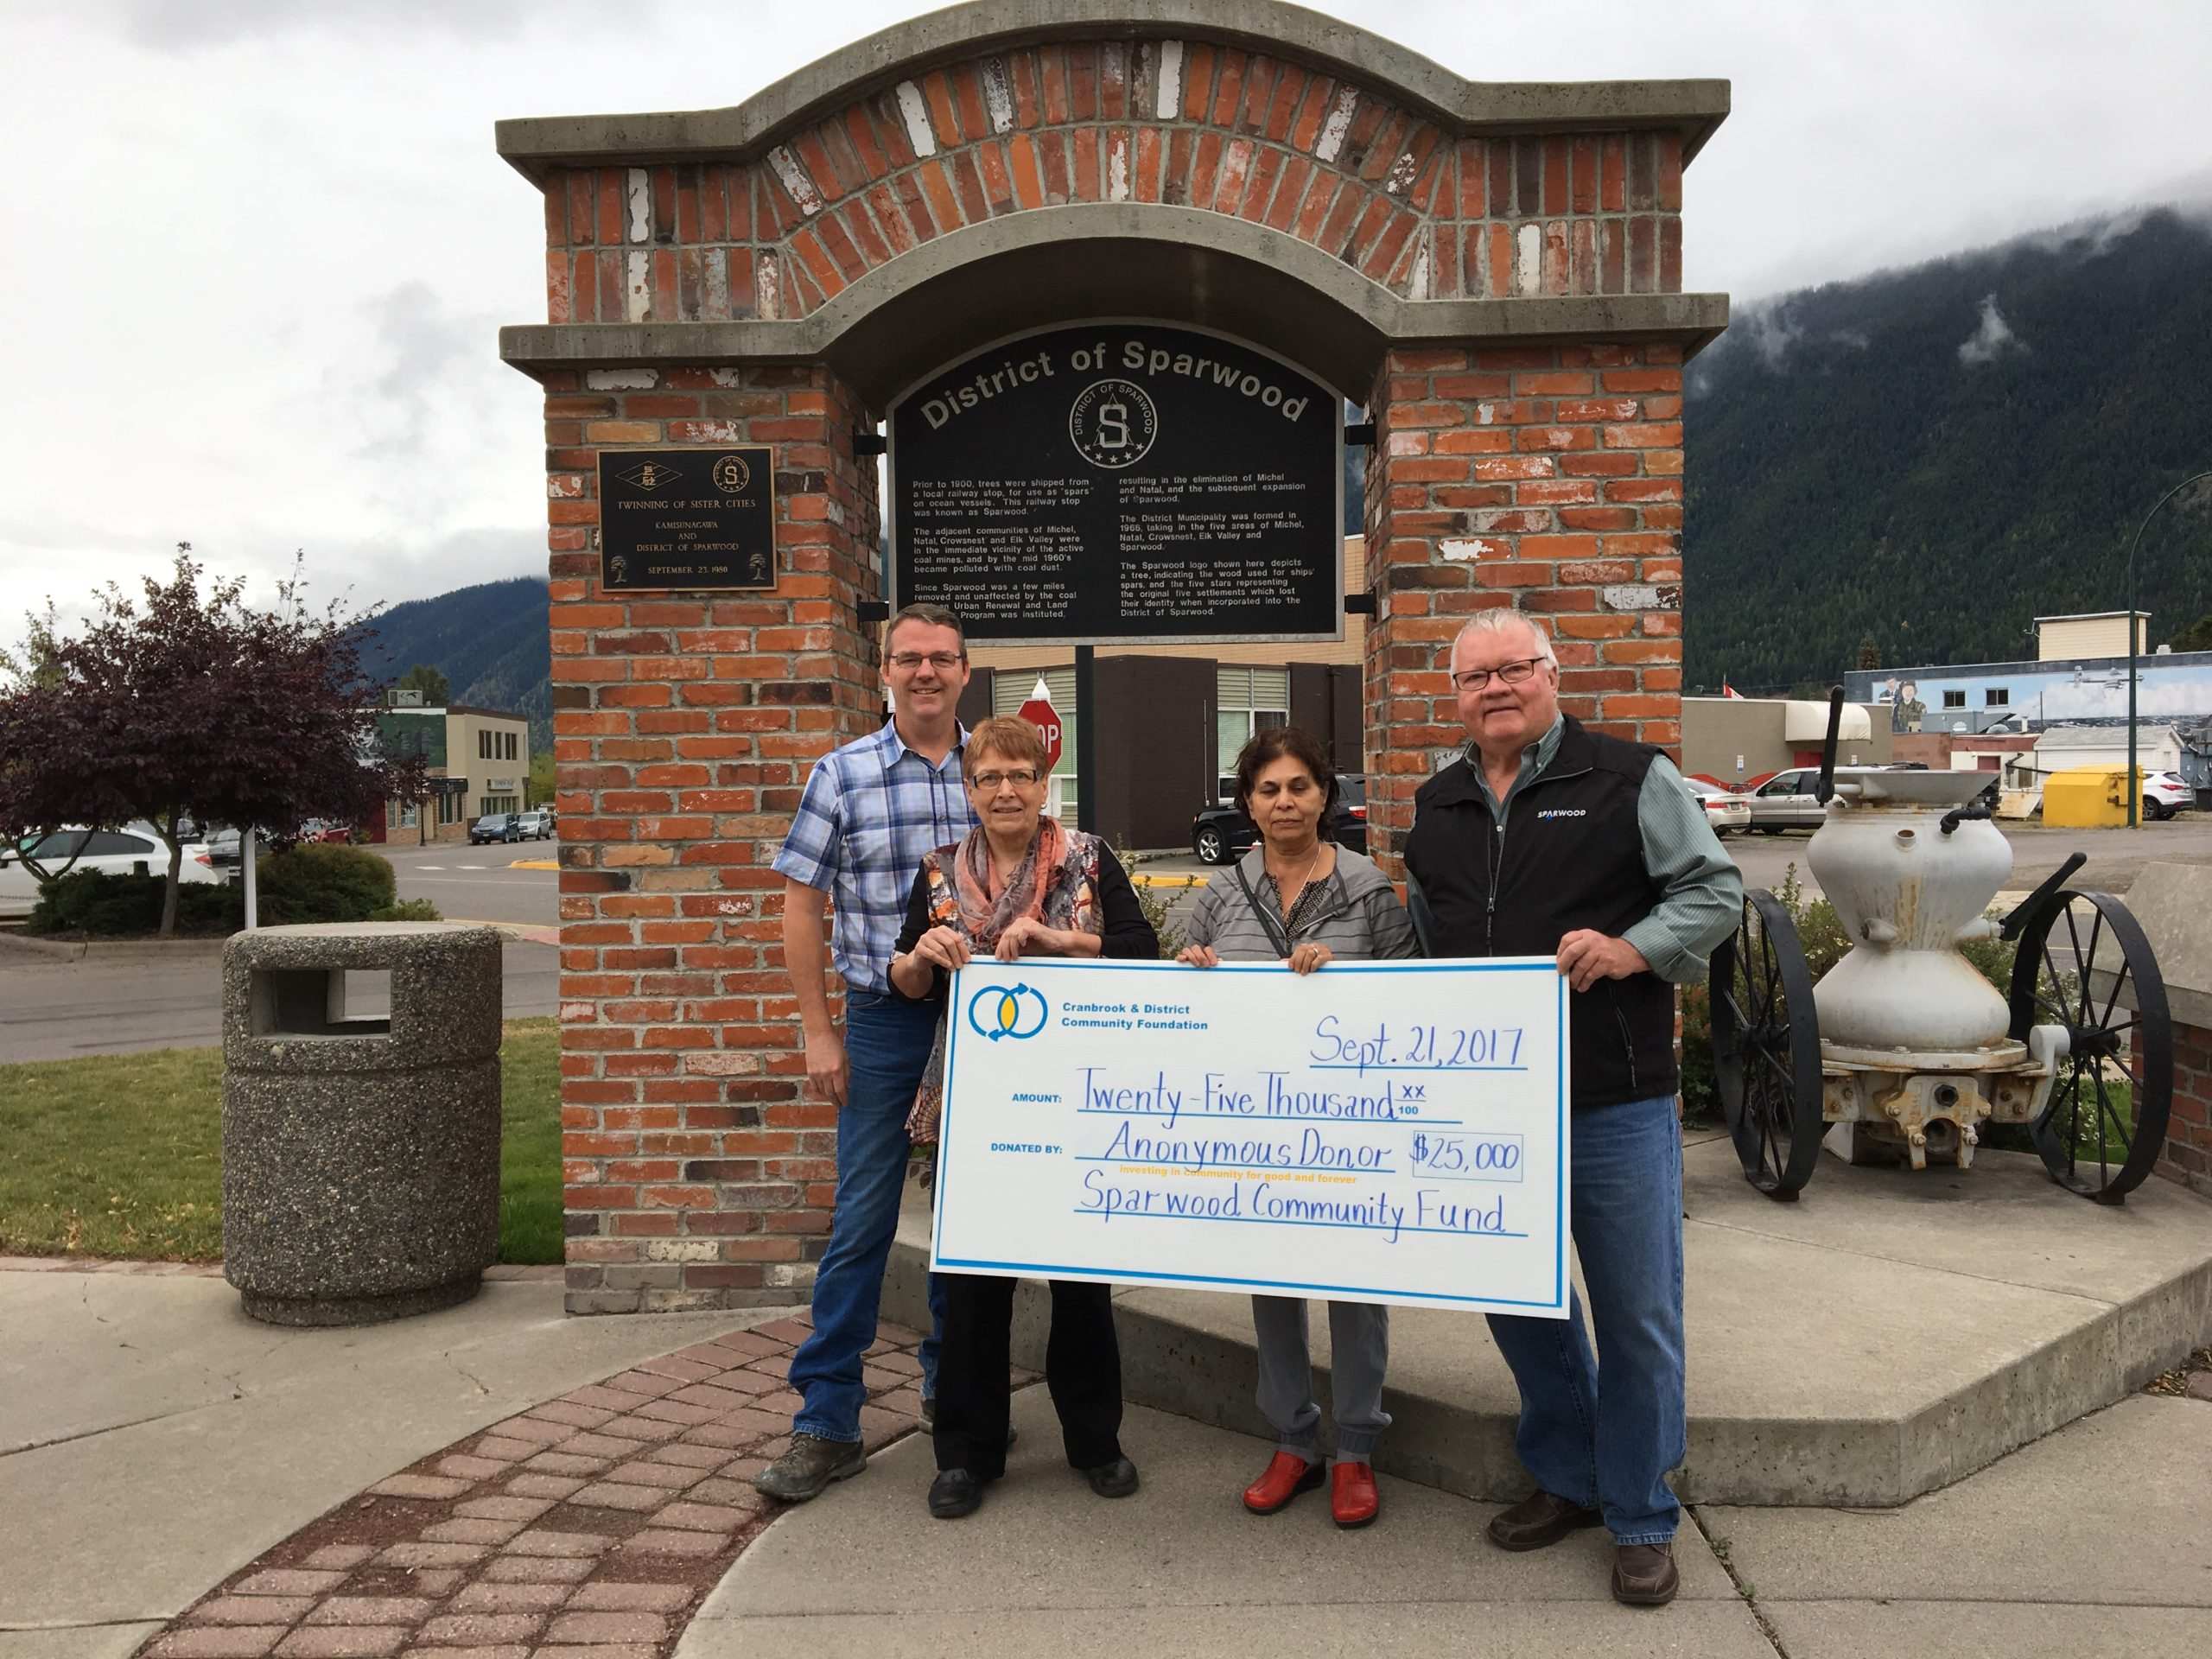 Sparwood community fund receives $25,000 from anonymous donor